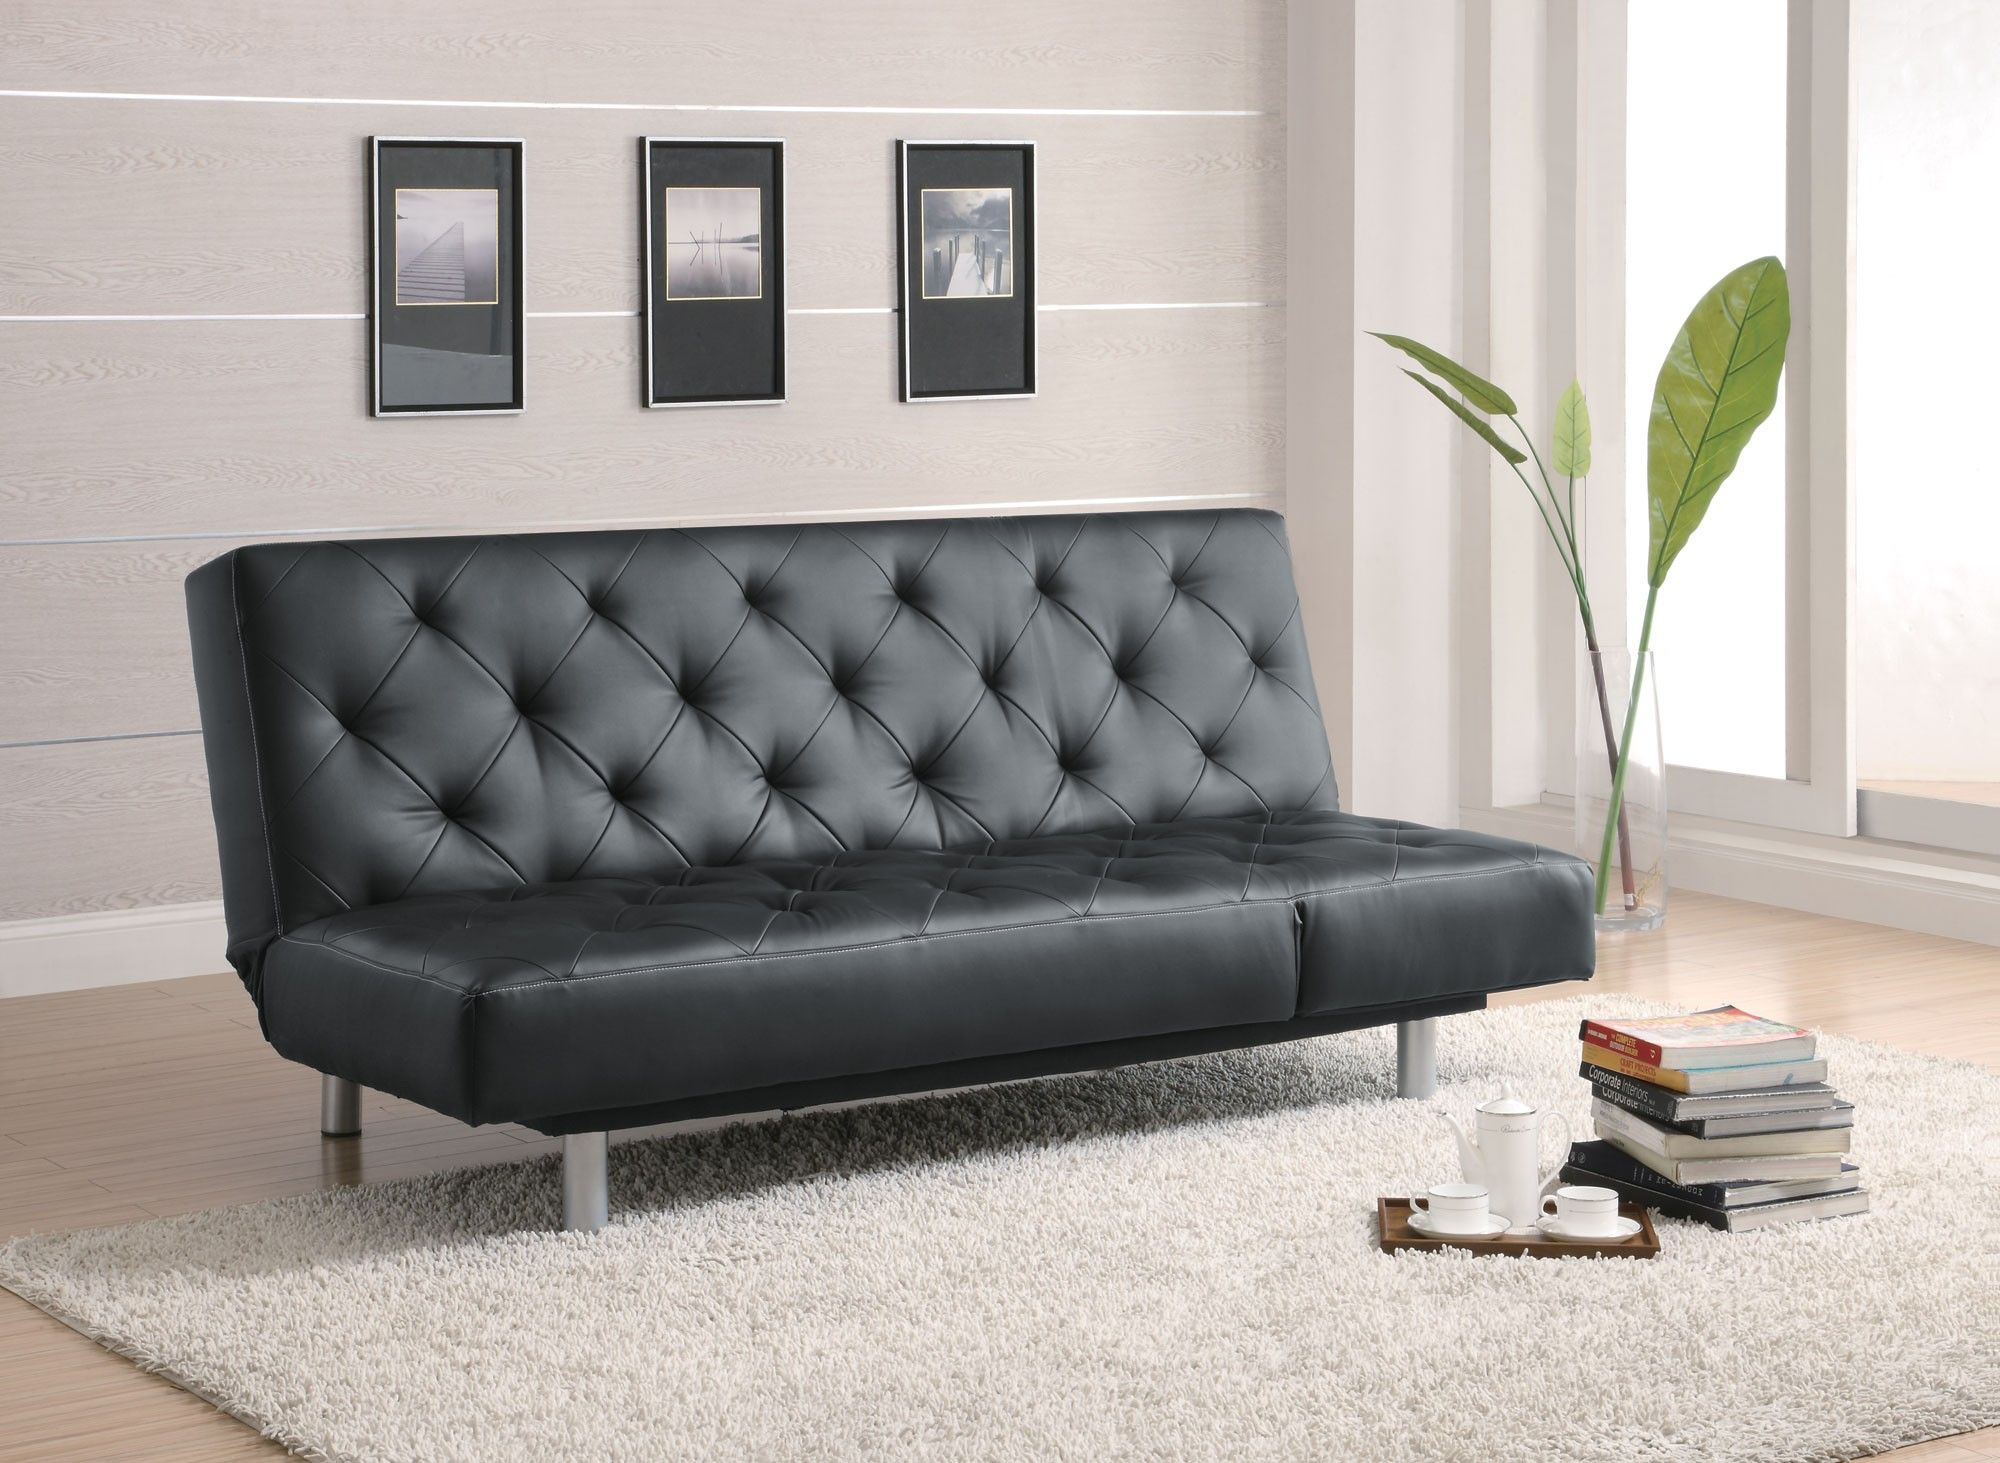 Chesterfield sofa beds u give your home elegance class and dual